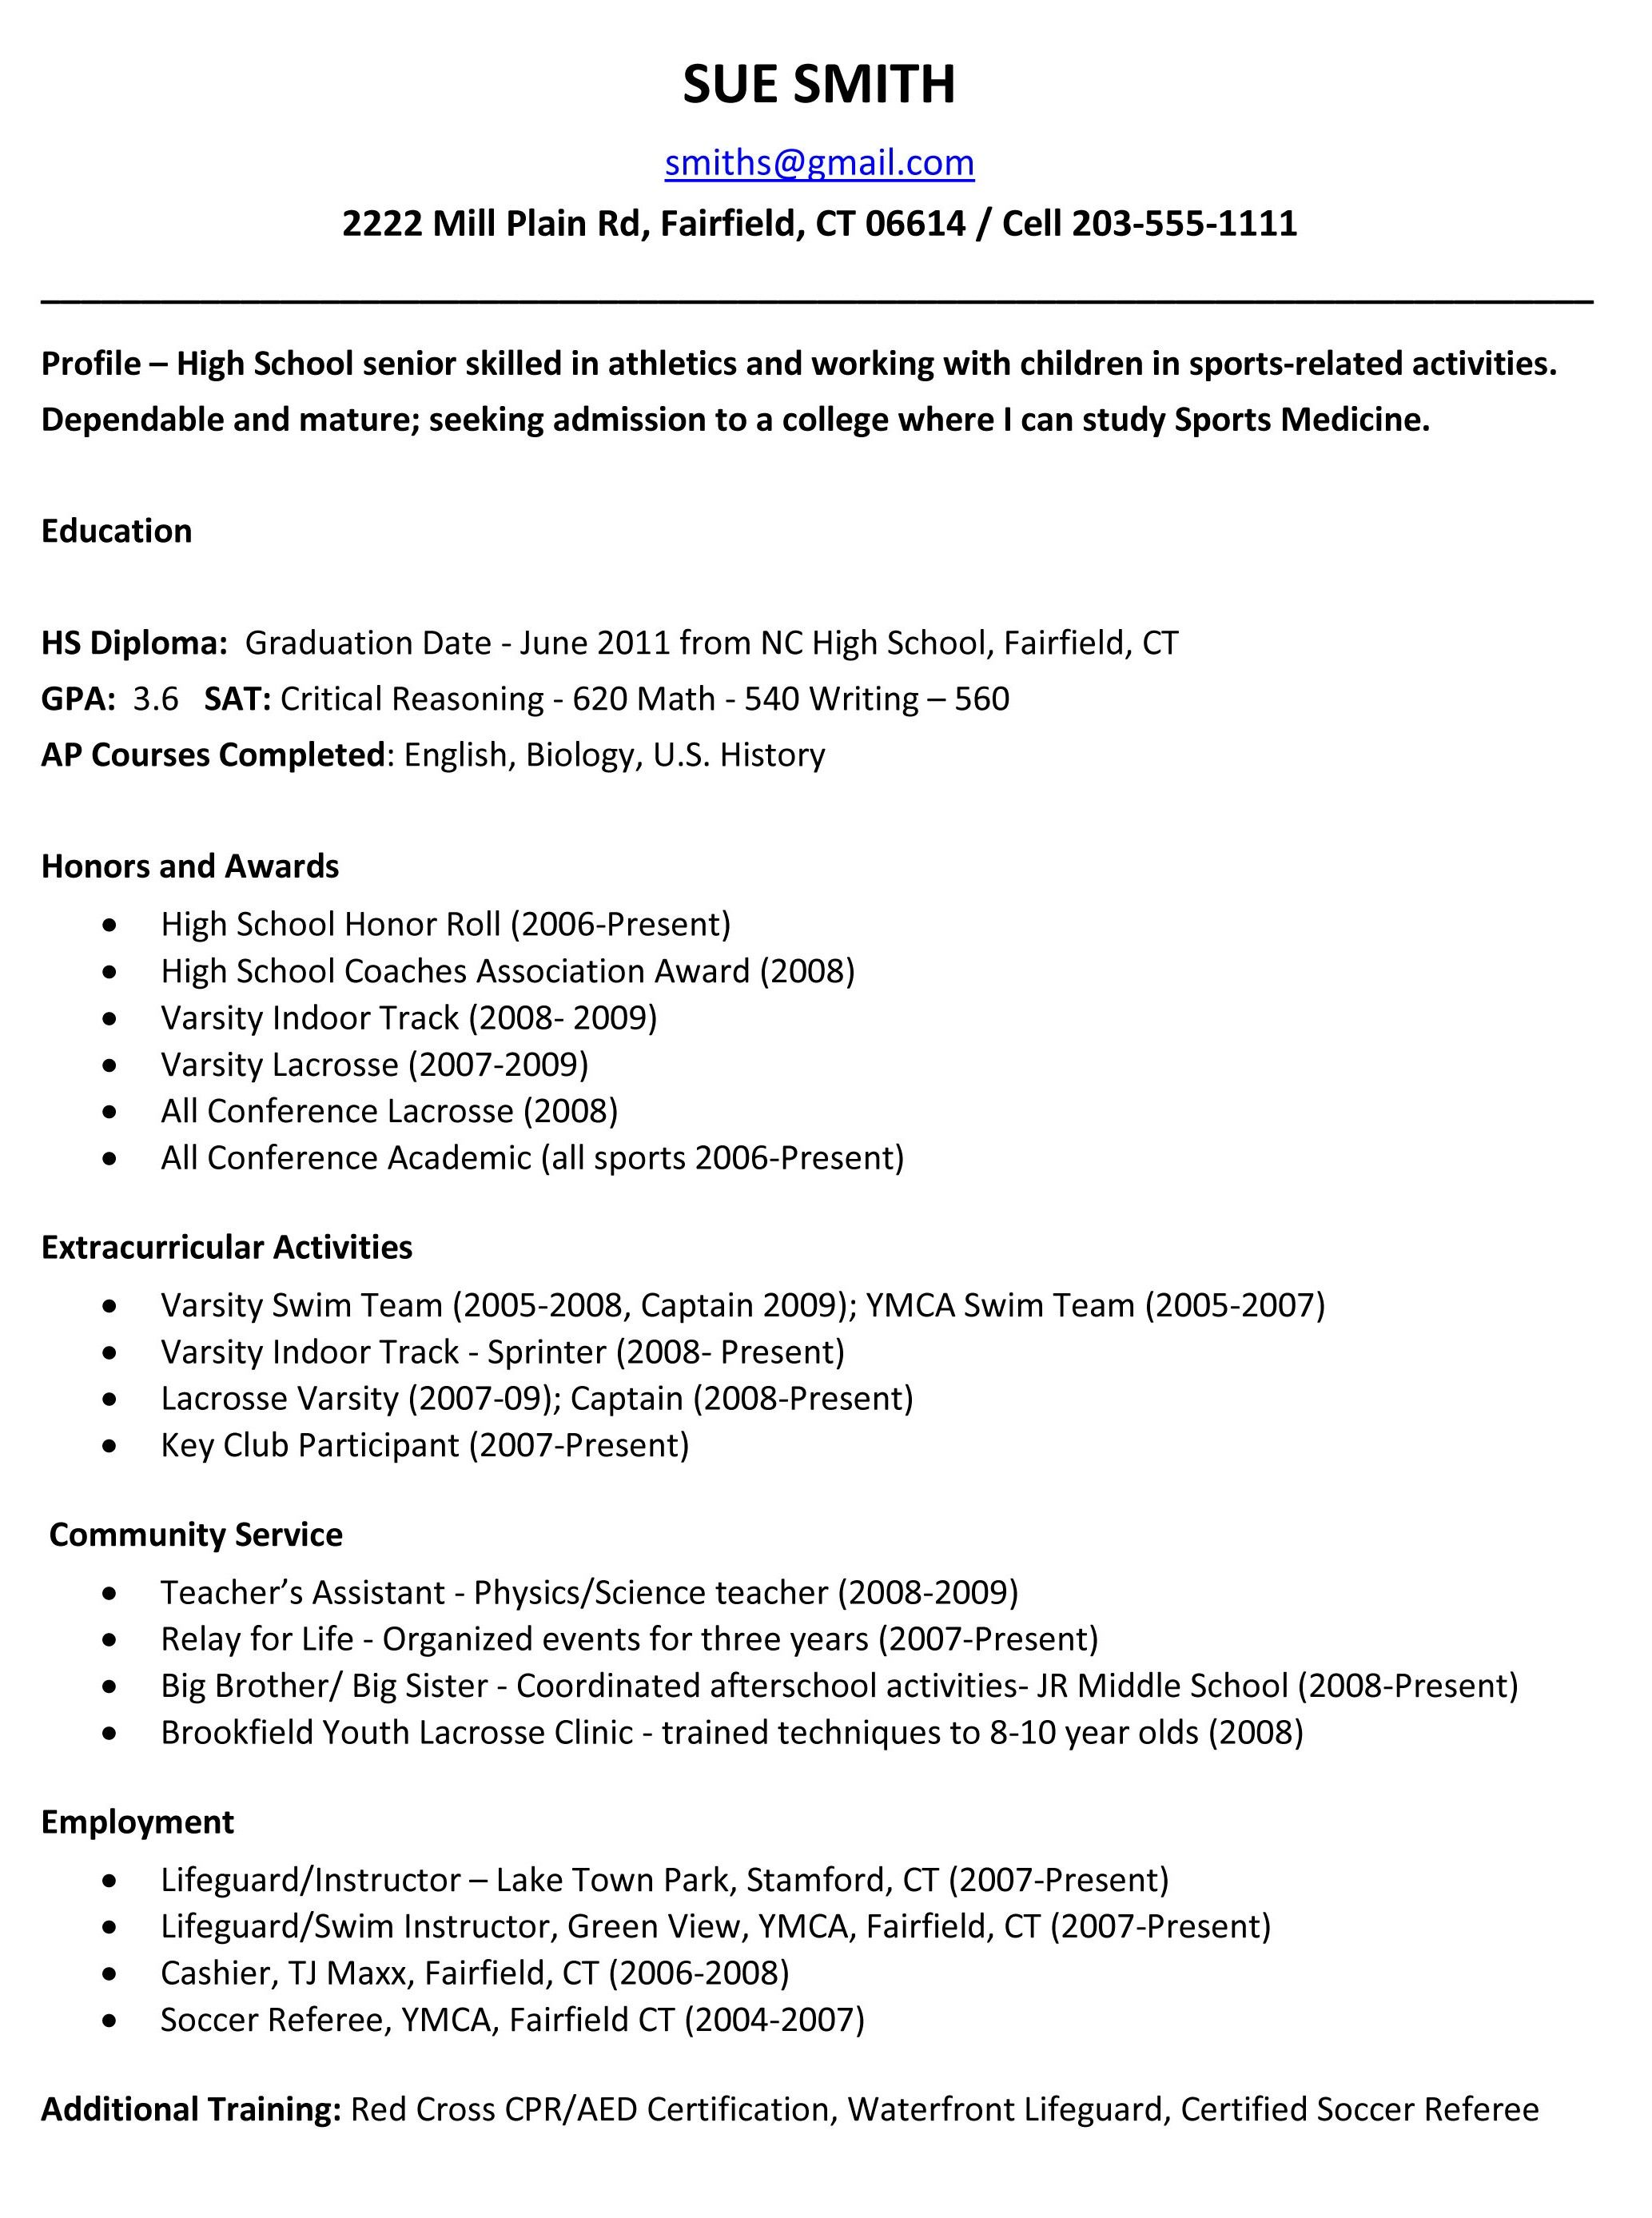 example resume for high school students for college applications school resume templateregularmidwesternerscom regularmidwesterners - School Resume Template